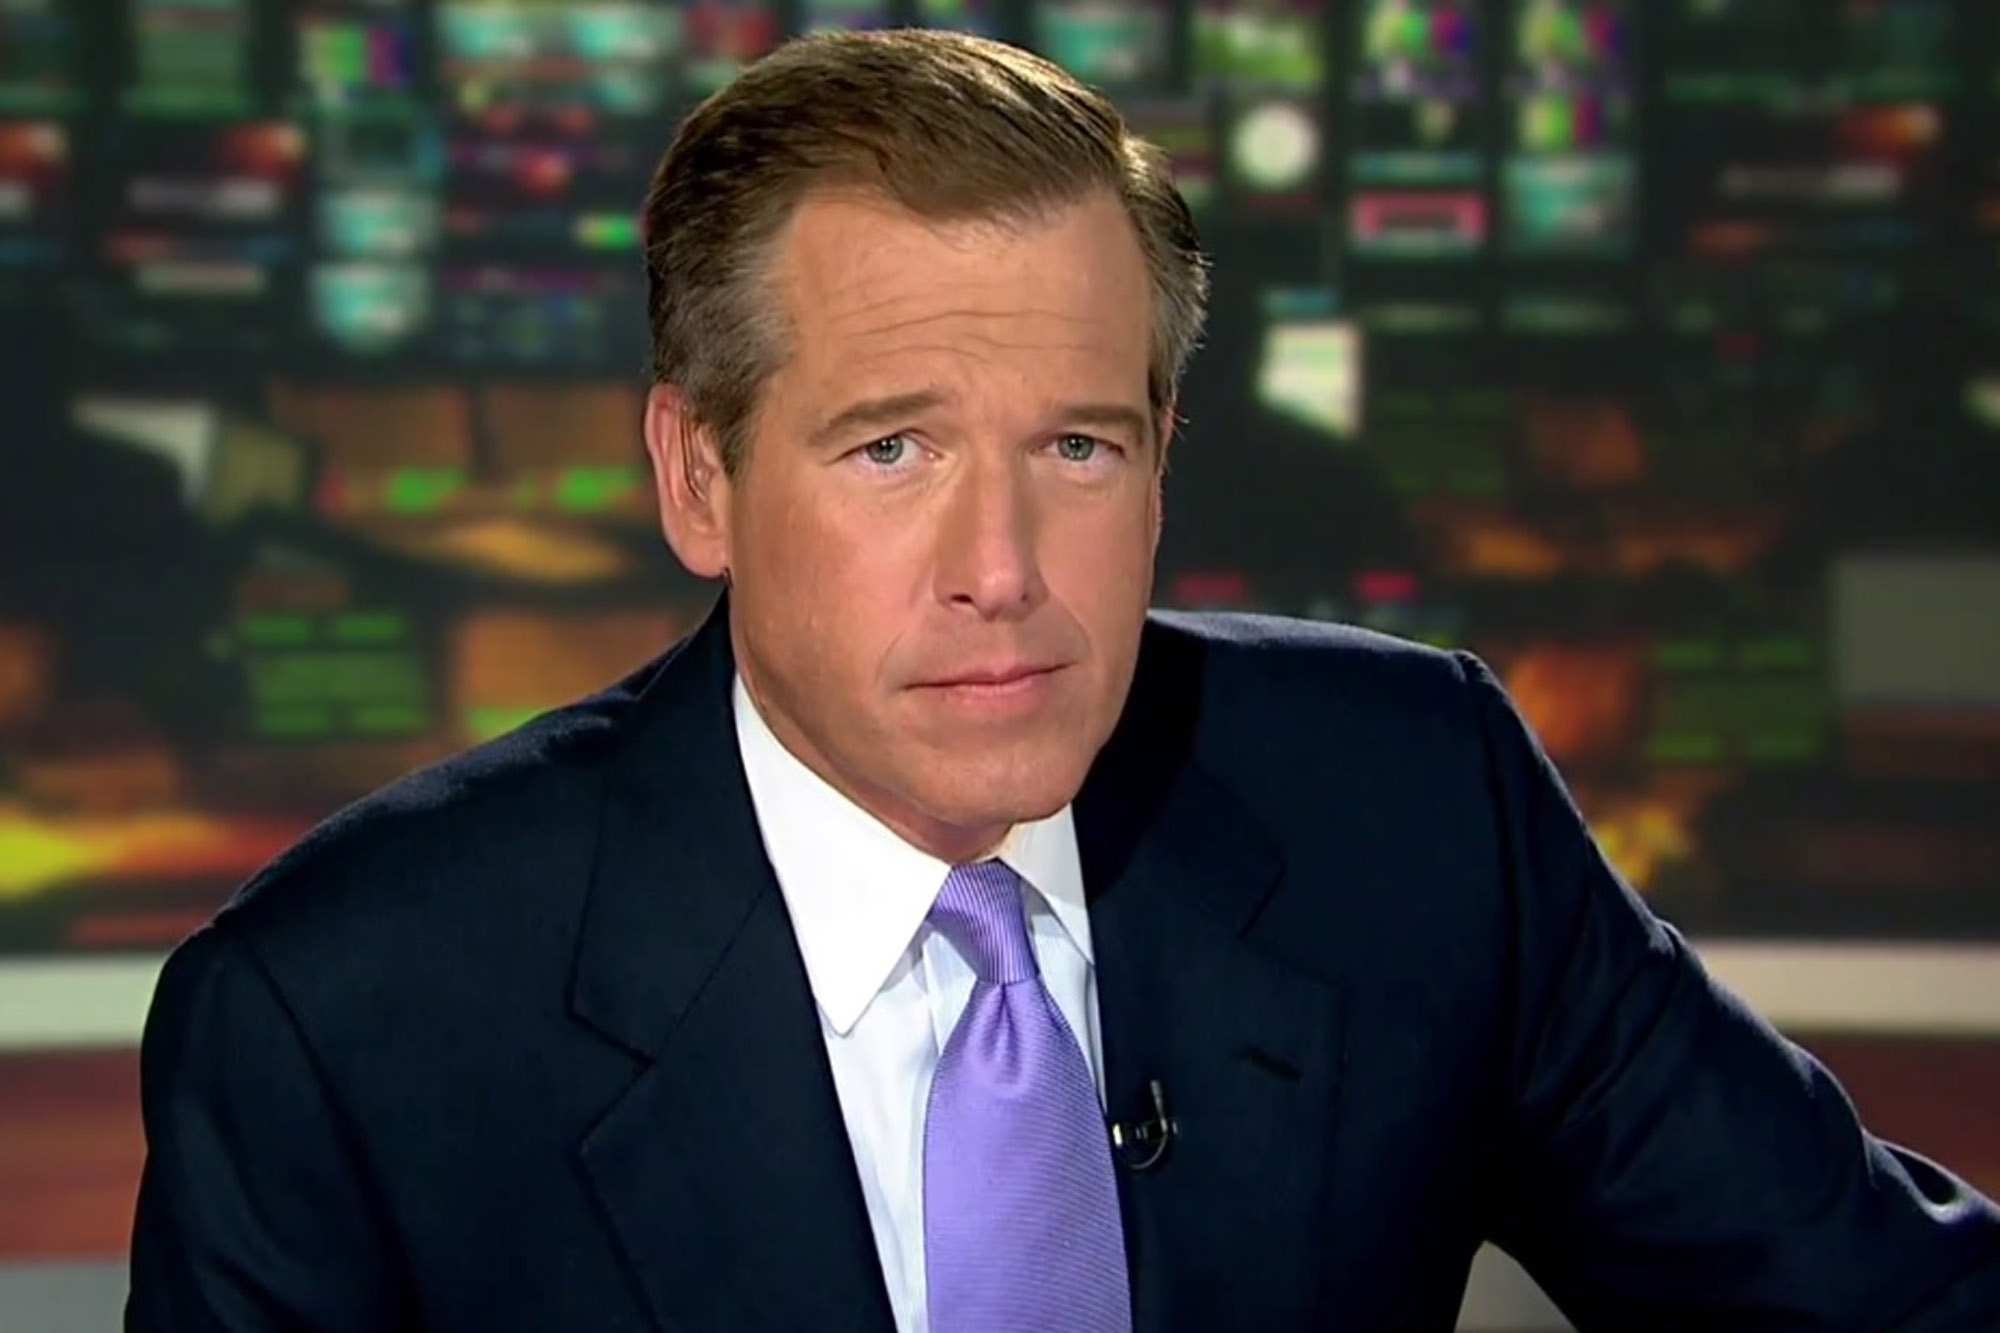 Brian Williams War Stories